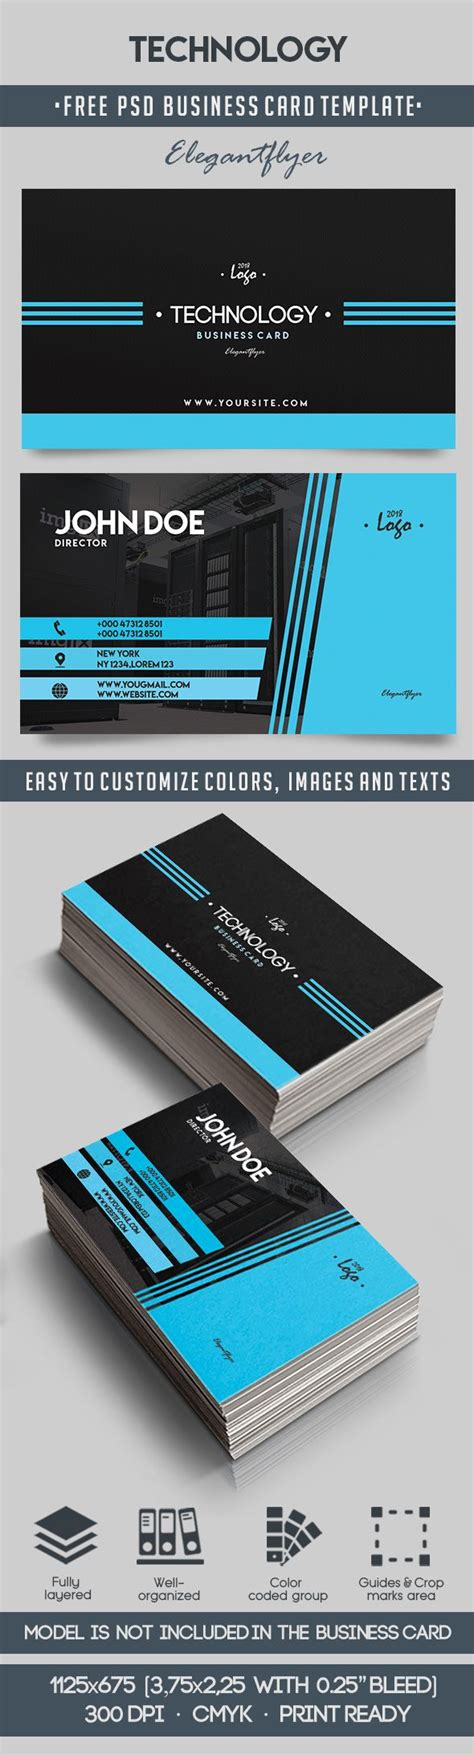 Photoshop Business Card Templates Technology by Technology Free Business Card Templates Psd By